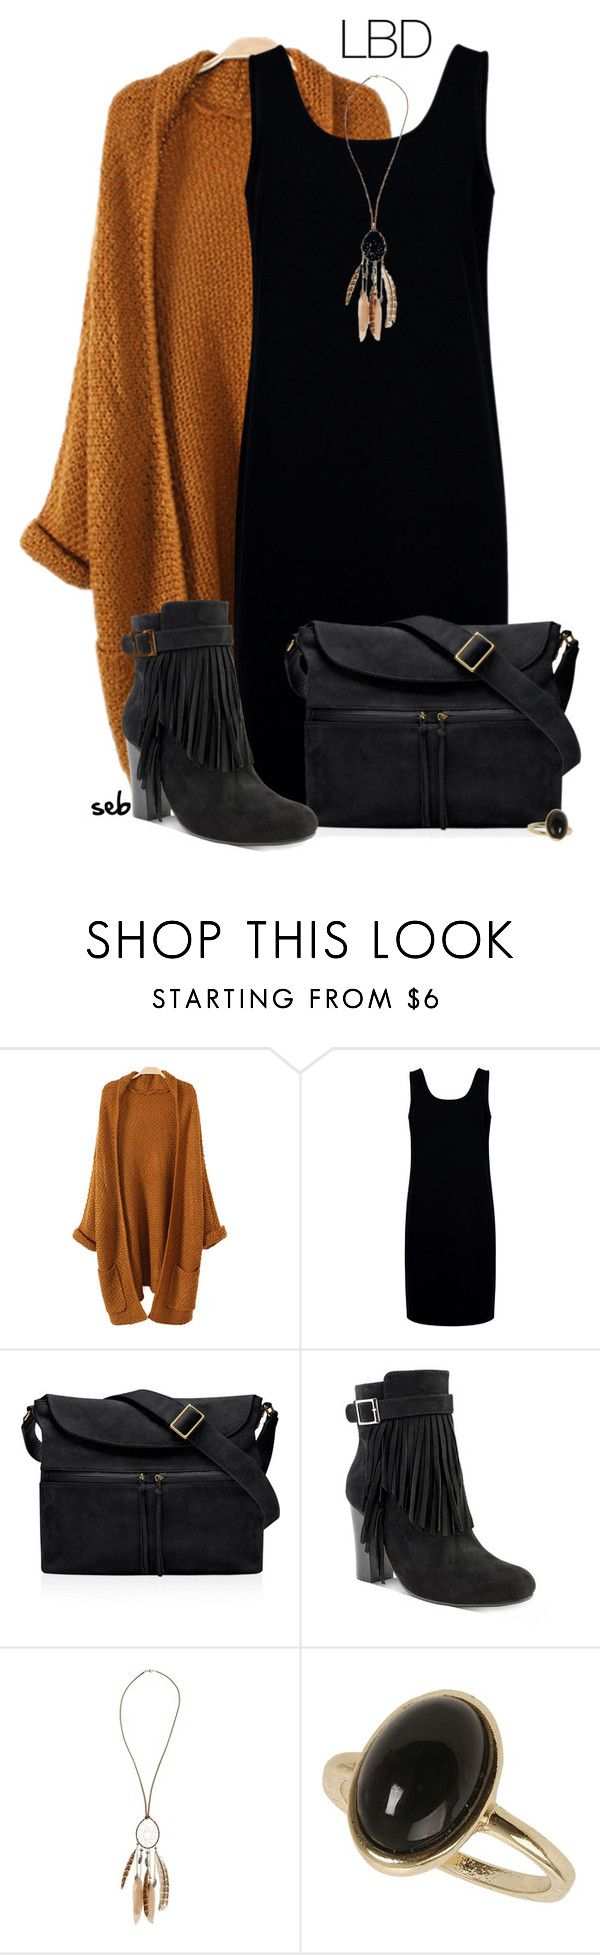 """""""Fall LBD"""" by coombsie24 ❤ liked on Polyvore featuring Être Cécile, Elizabeth and James, OLIVIA MILLER and Dorothy Perkins"""